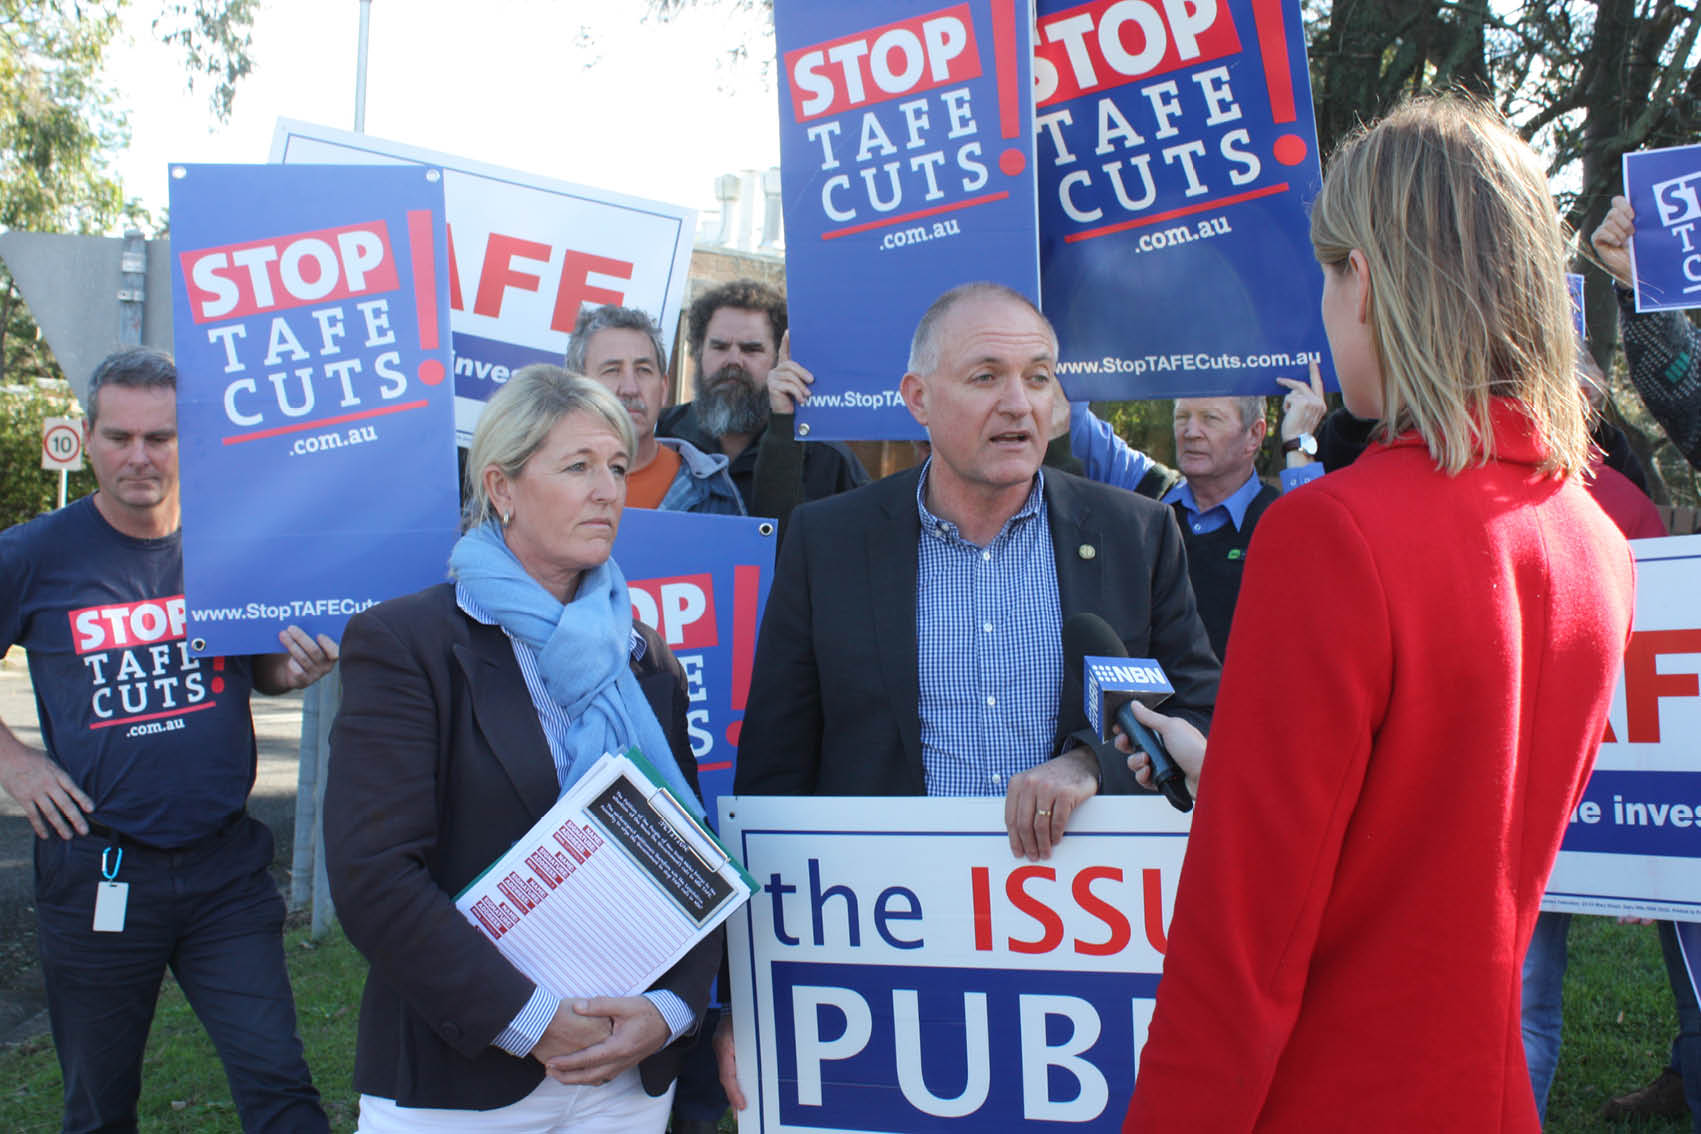 NSW GOVERNMENT SHUTS DOWN DEBATE ON TAFE